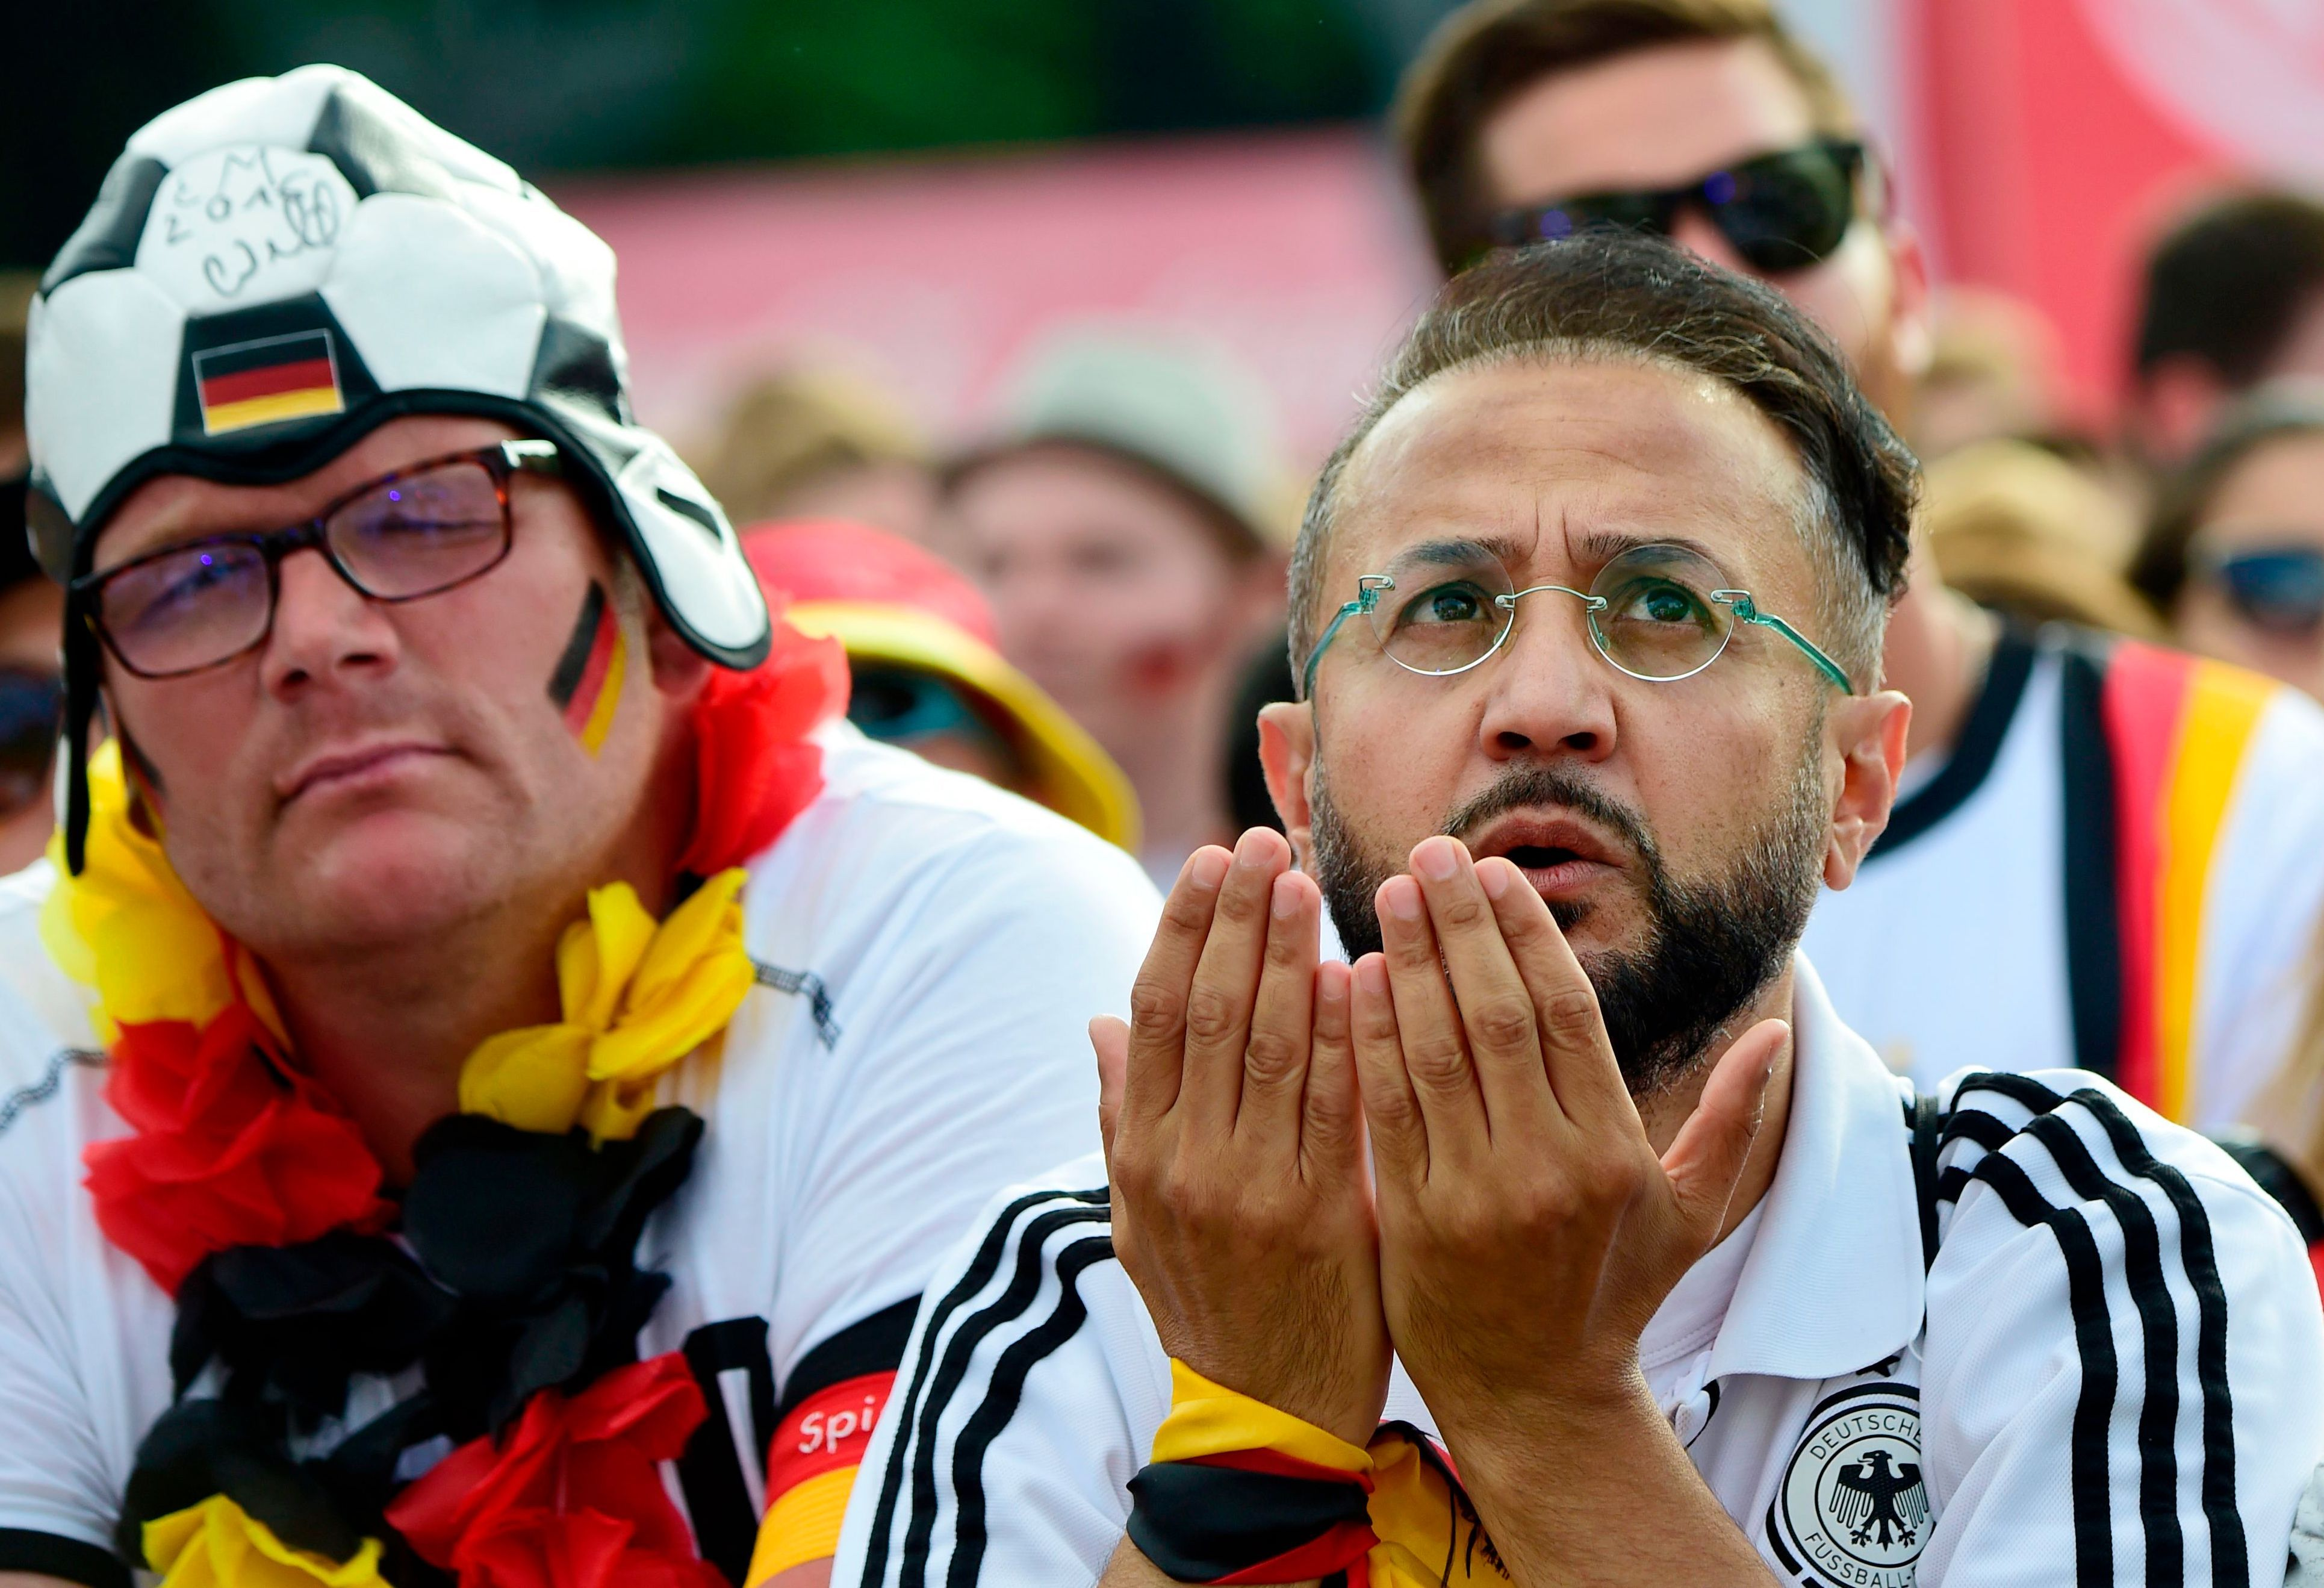 German fans had nothing to cheer about in their surprising 1-0 defeat to Mexico.